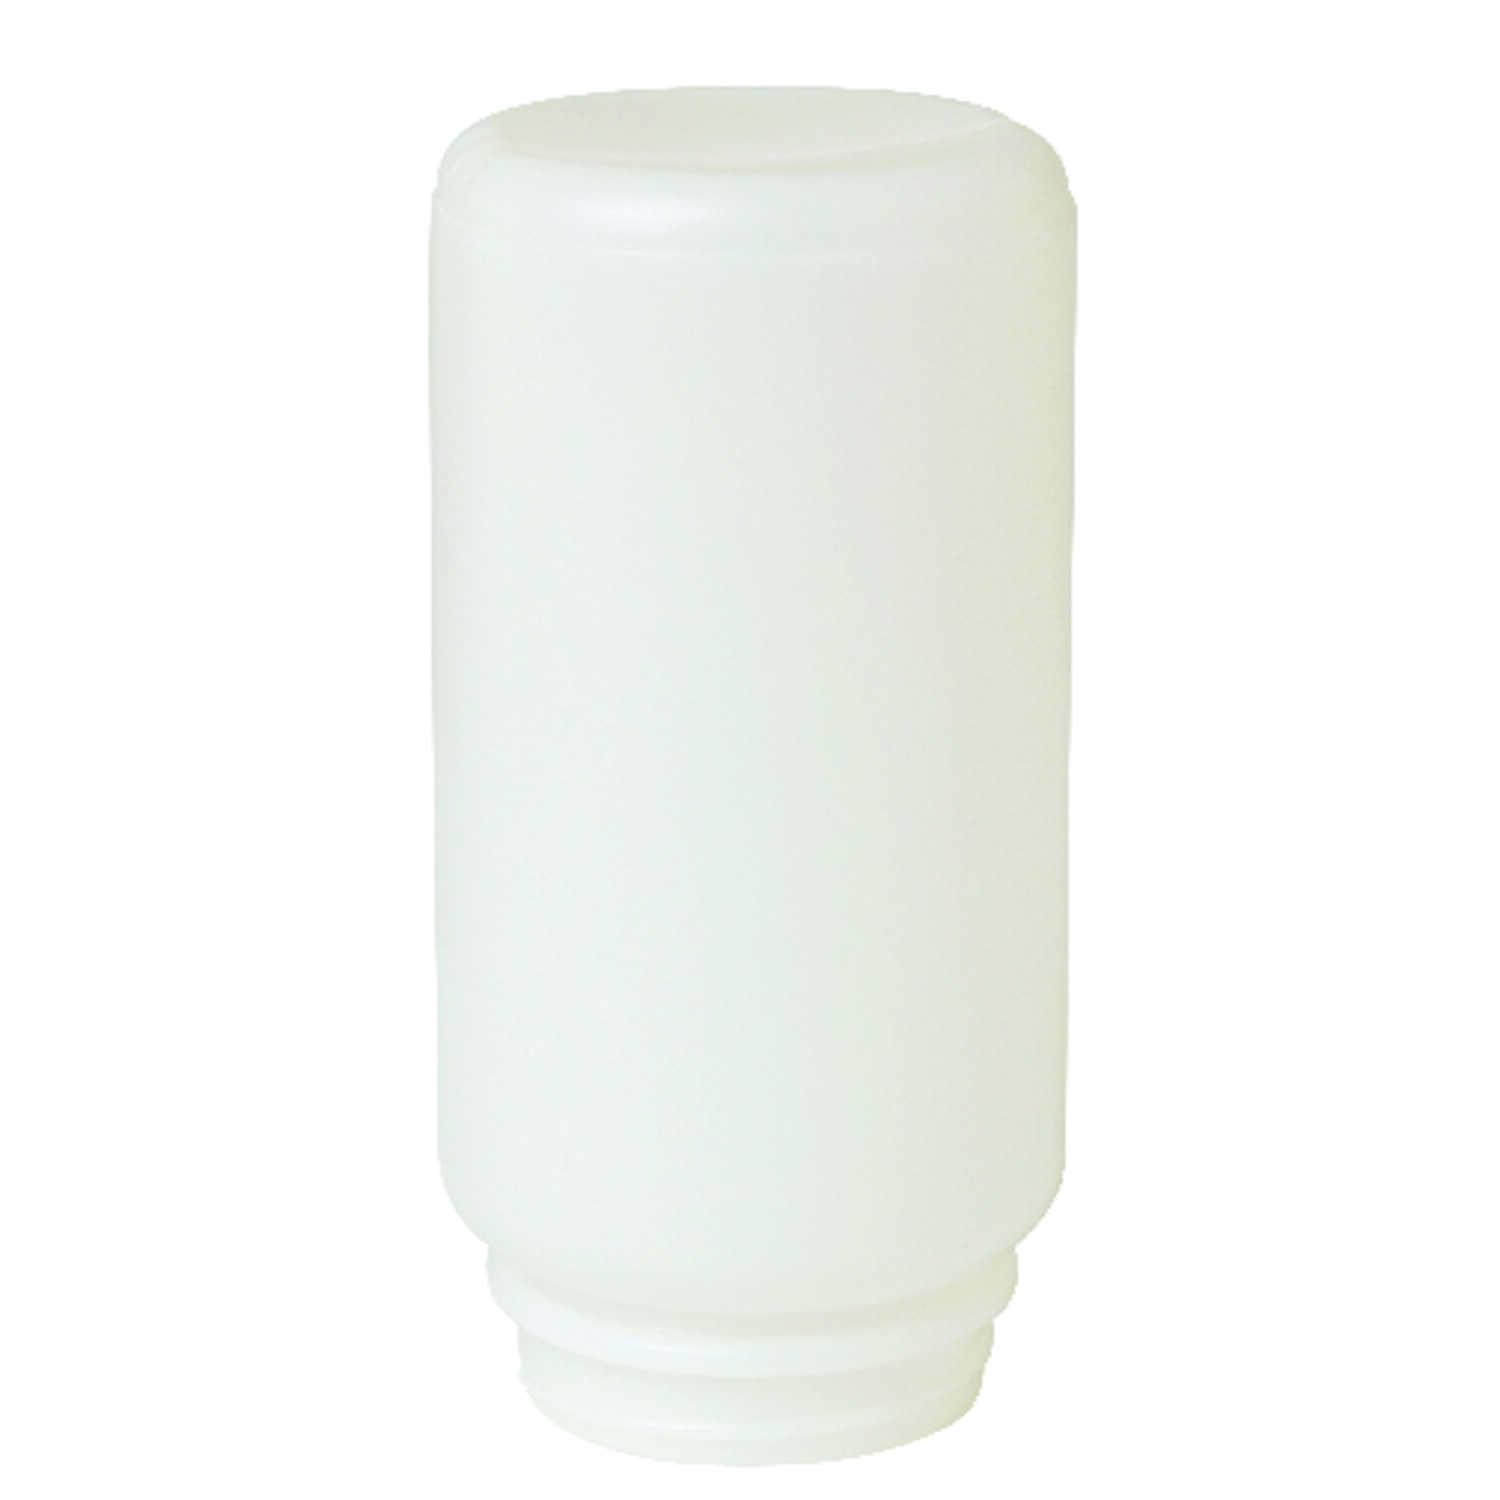 Miller  Little Giant  32 oz. Jar Feeder and Waterer  For Poultry